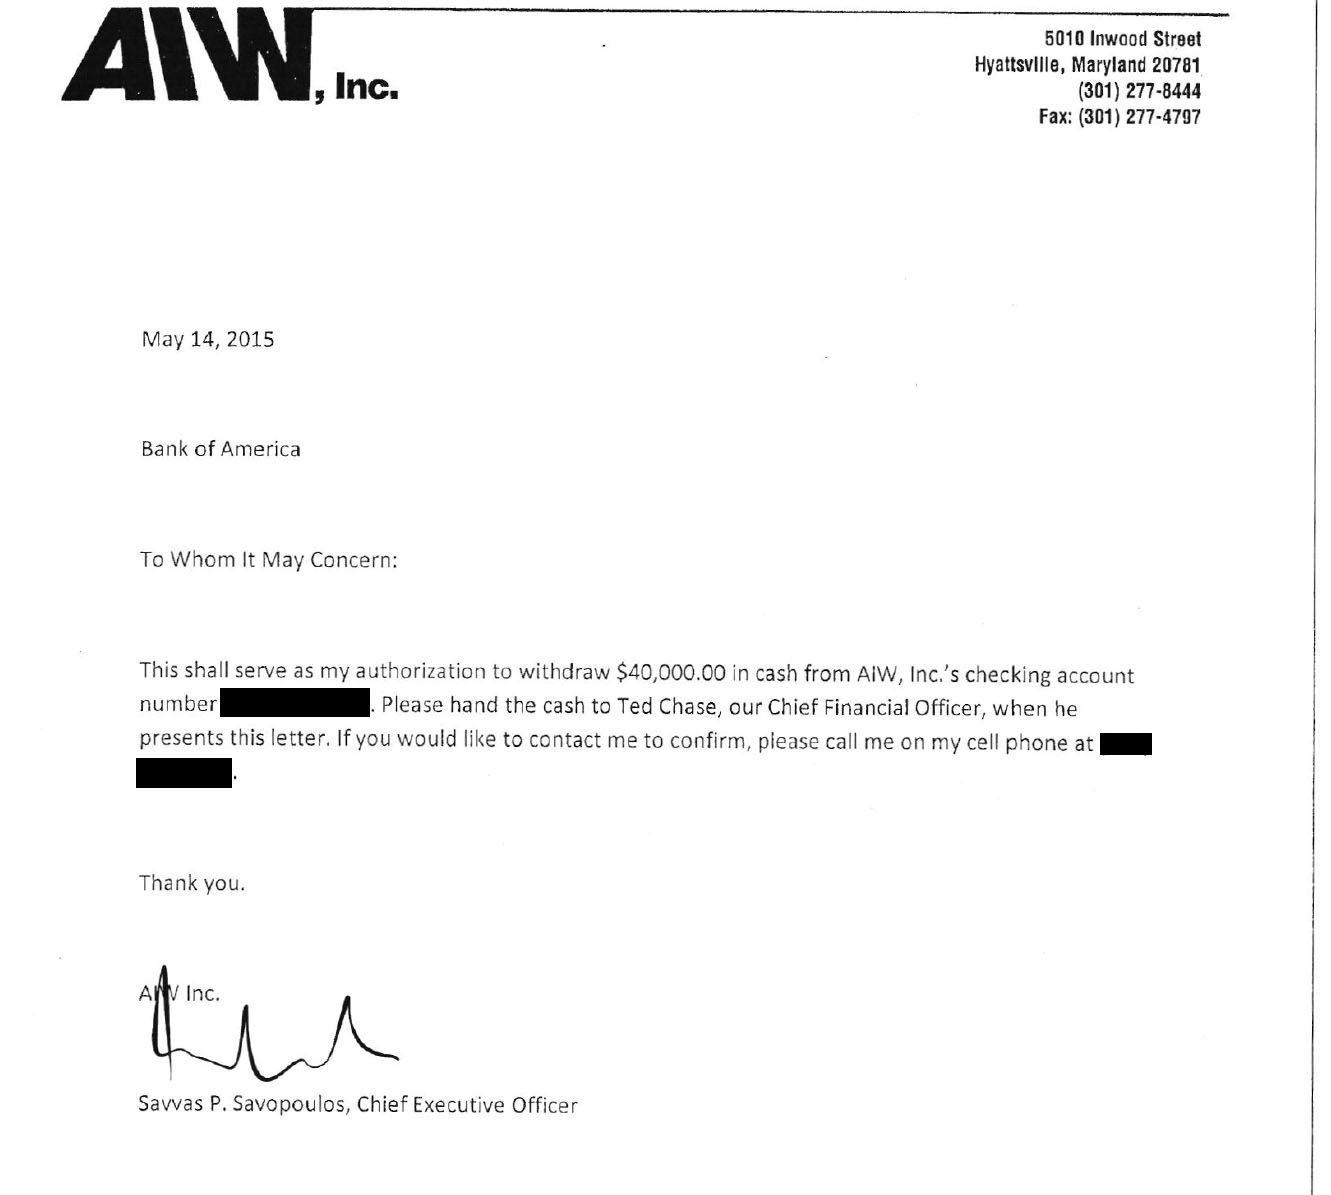 The authorization from Savvas Savopoulos to American Iron Works' CFO Ted Chase to withdraw $40,000 from the company checking account.(Courtesy U.S. Attorney's Office for D.C.)